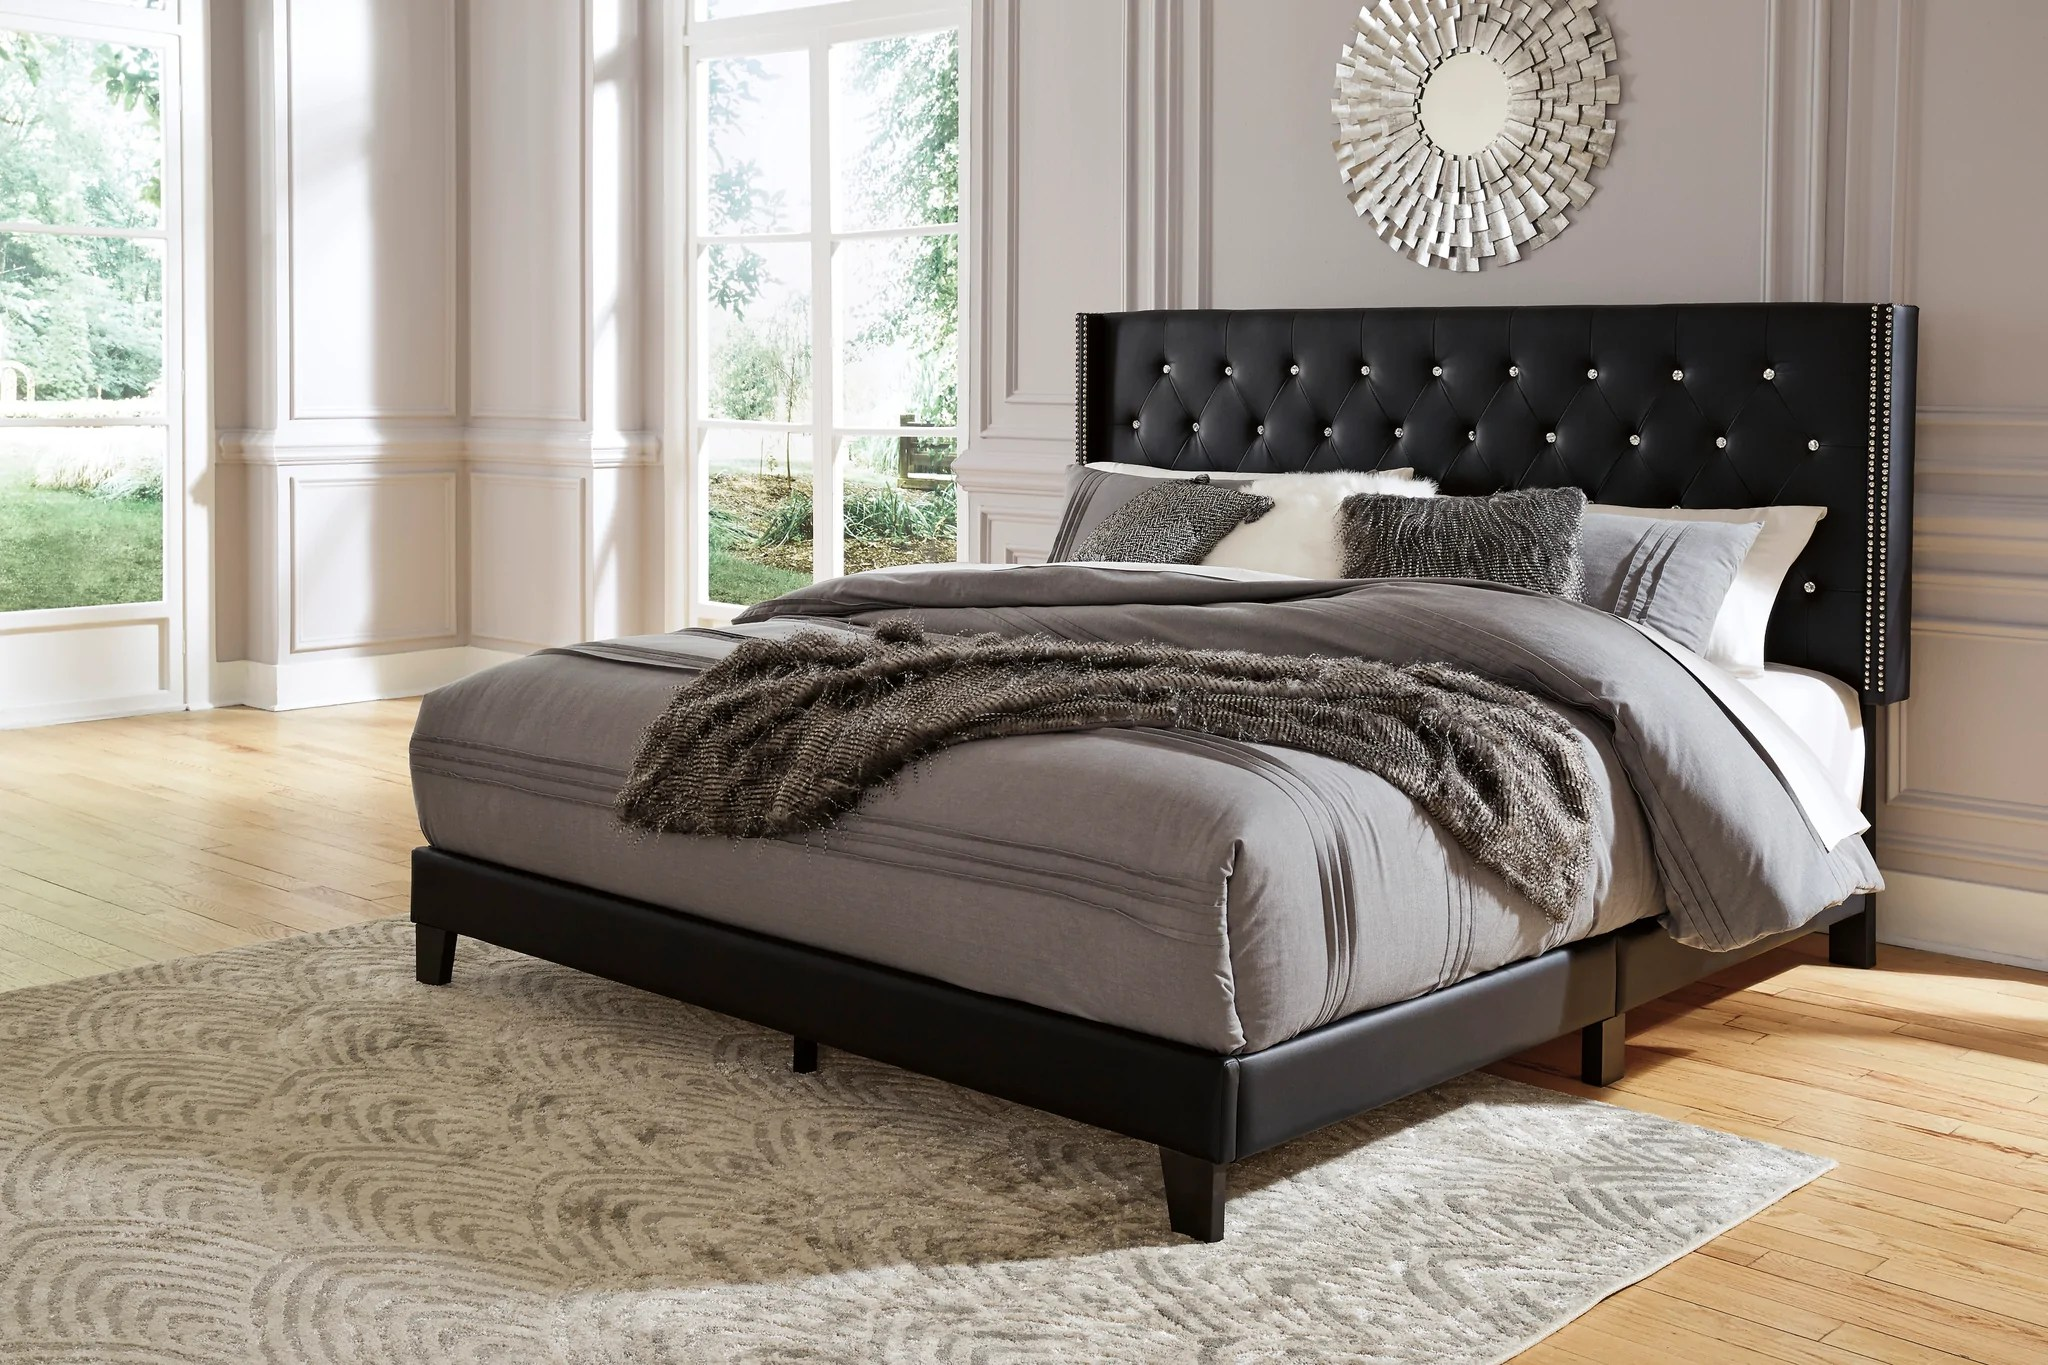 Vintasso 3 Piece Queen Upholstered Bed B089 081 Signature Design B Super Deal Furniture Gallery